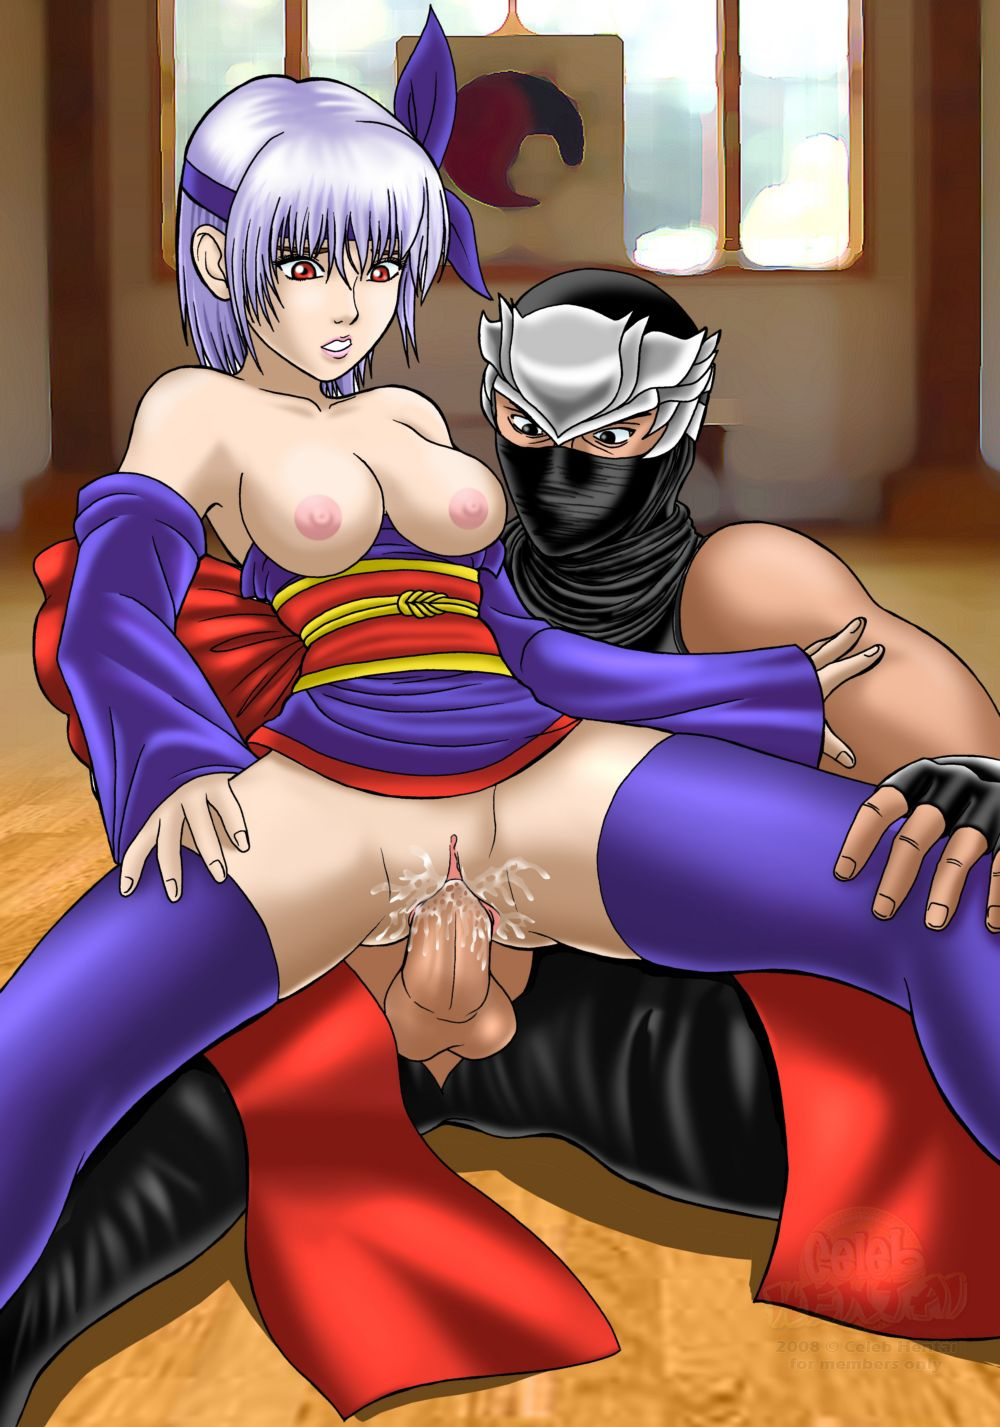 Female ninja porn games sexy movies